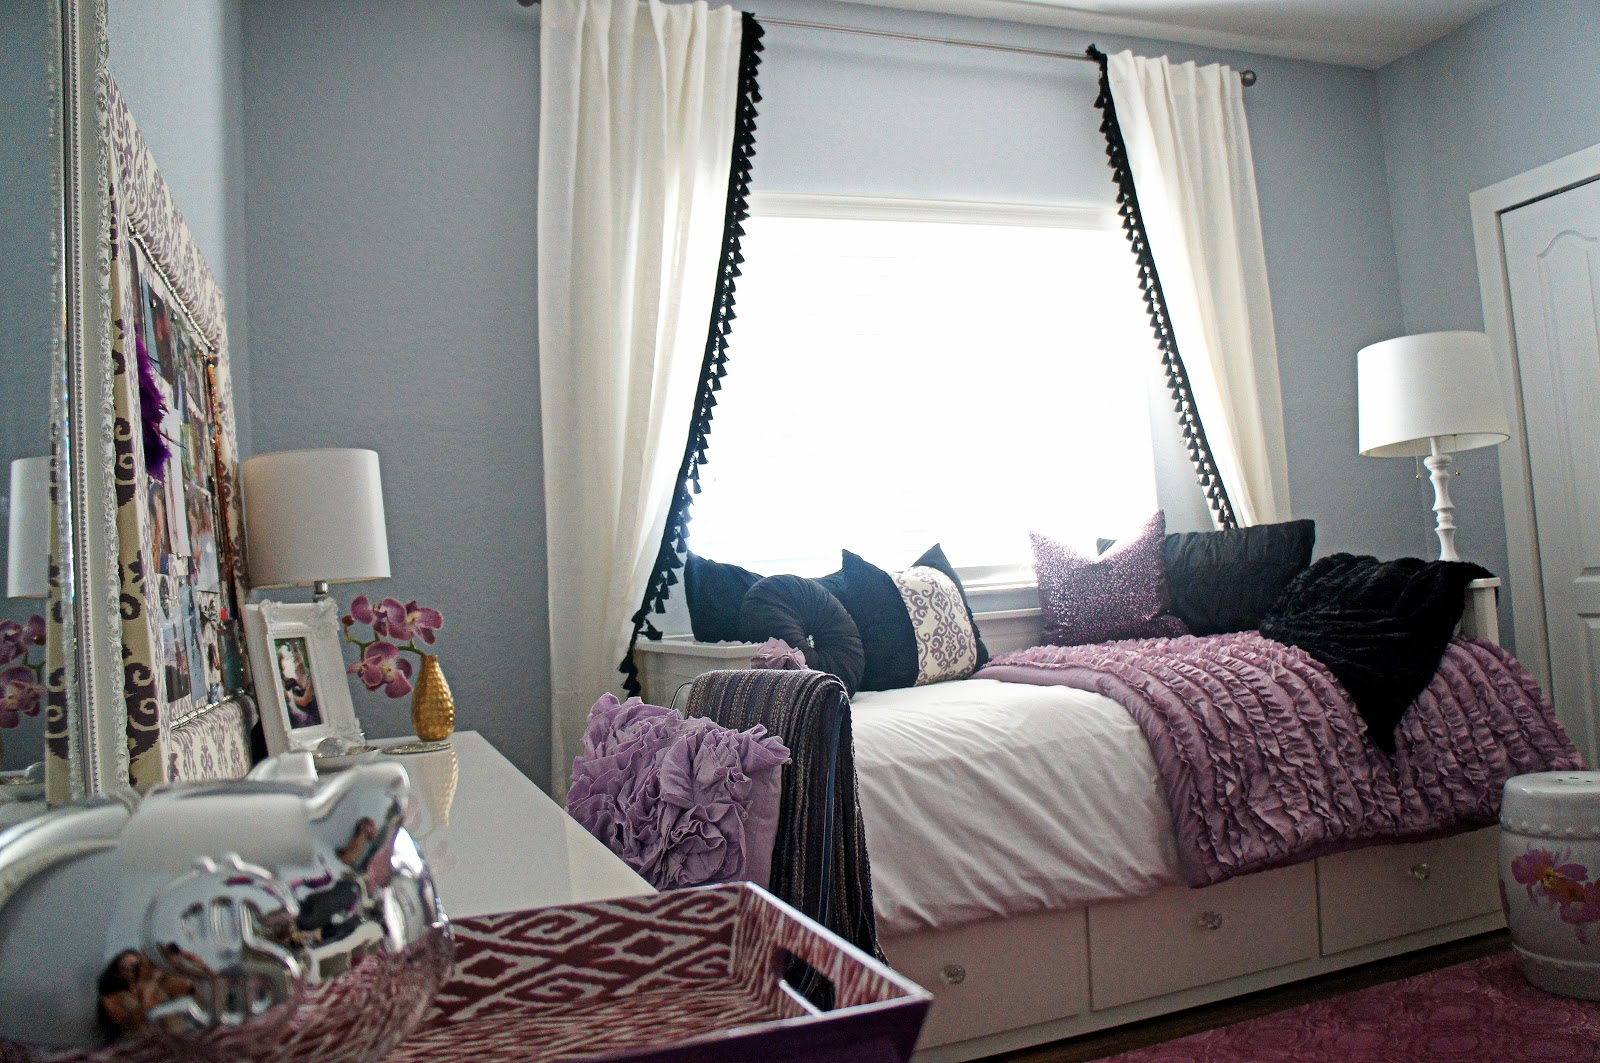 Take A Look At My DIY Pom Pom Tassel Curtains.